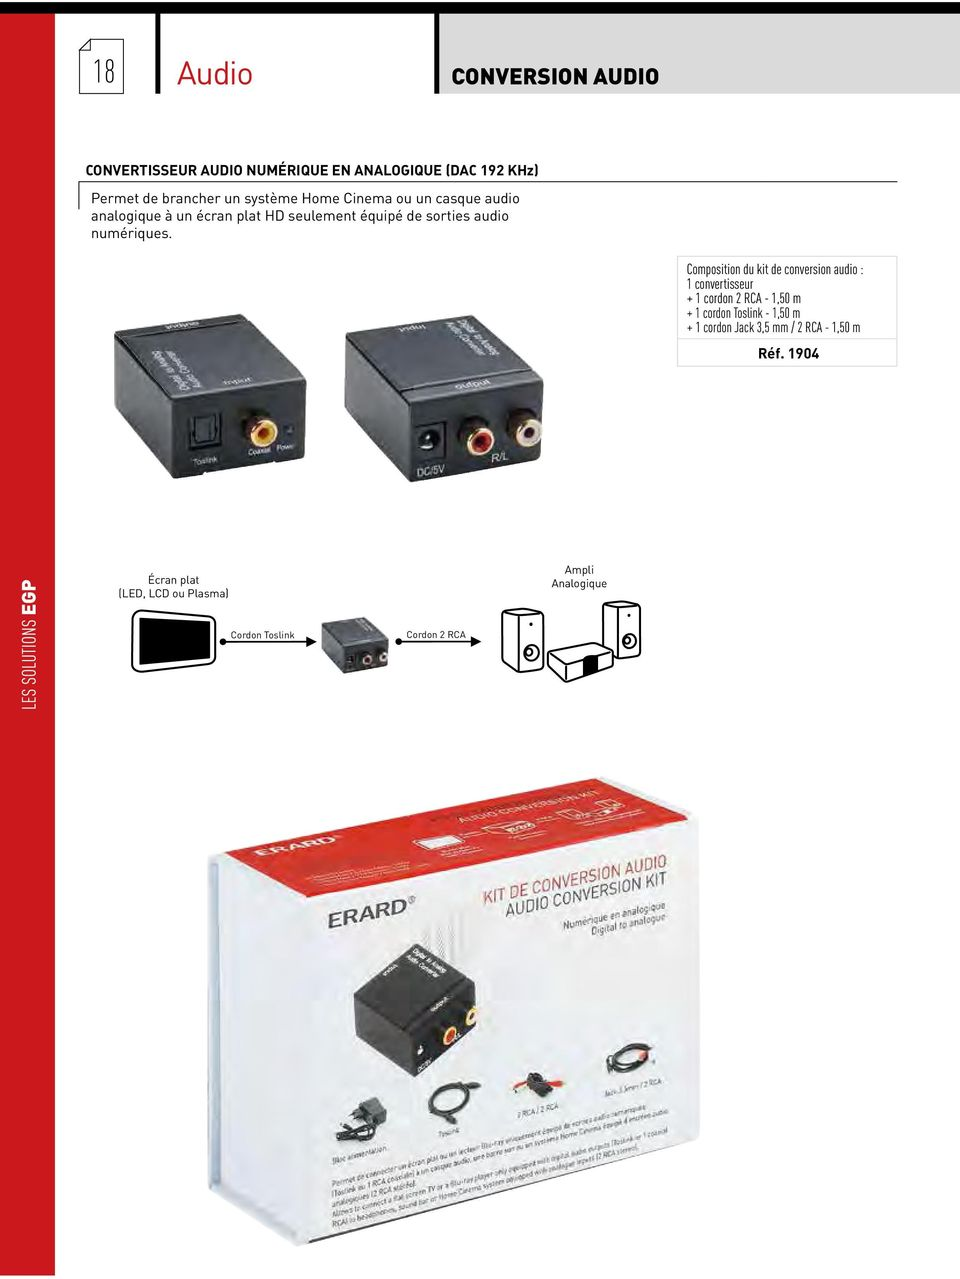 Composition du kit de conversion audio : 1 convertisseur + 1 cordon 2 RCA - 1,50 m + 1 cordon Toslink - 1,50 m + 1 cordon